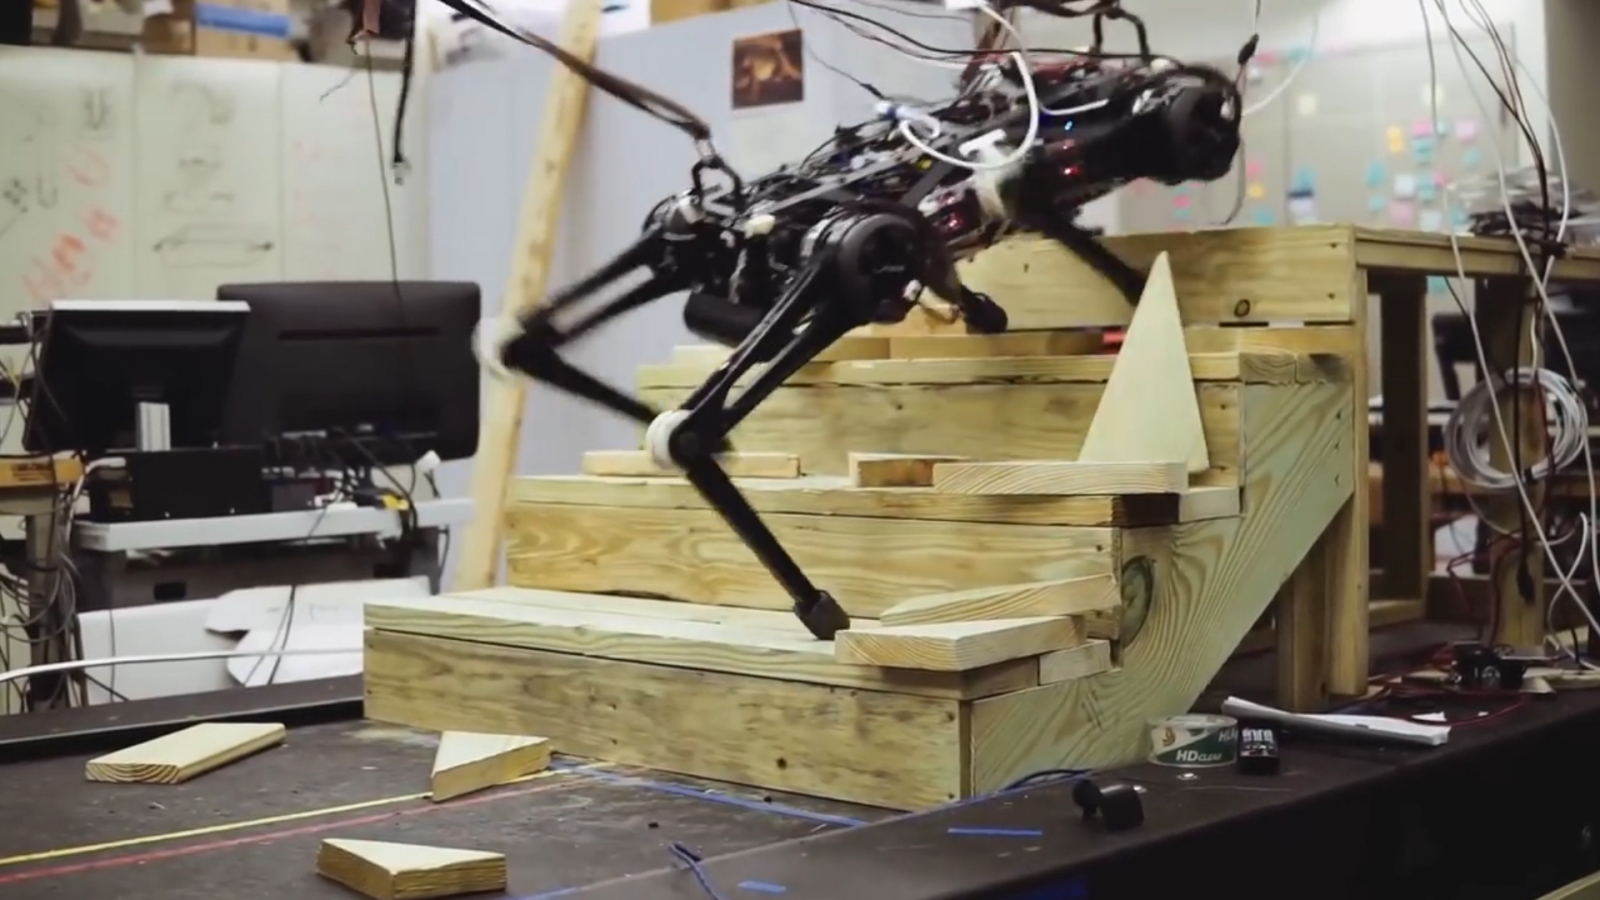 mits-cheetah-3-robot-can-run-up-stairs-without-watching-its-steps